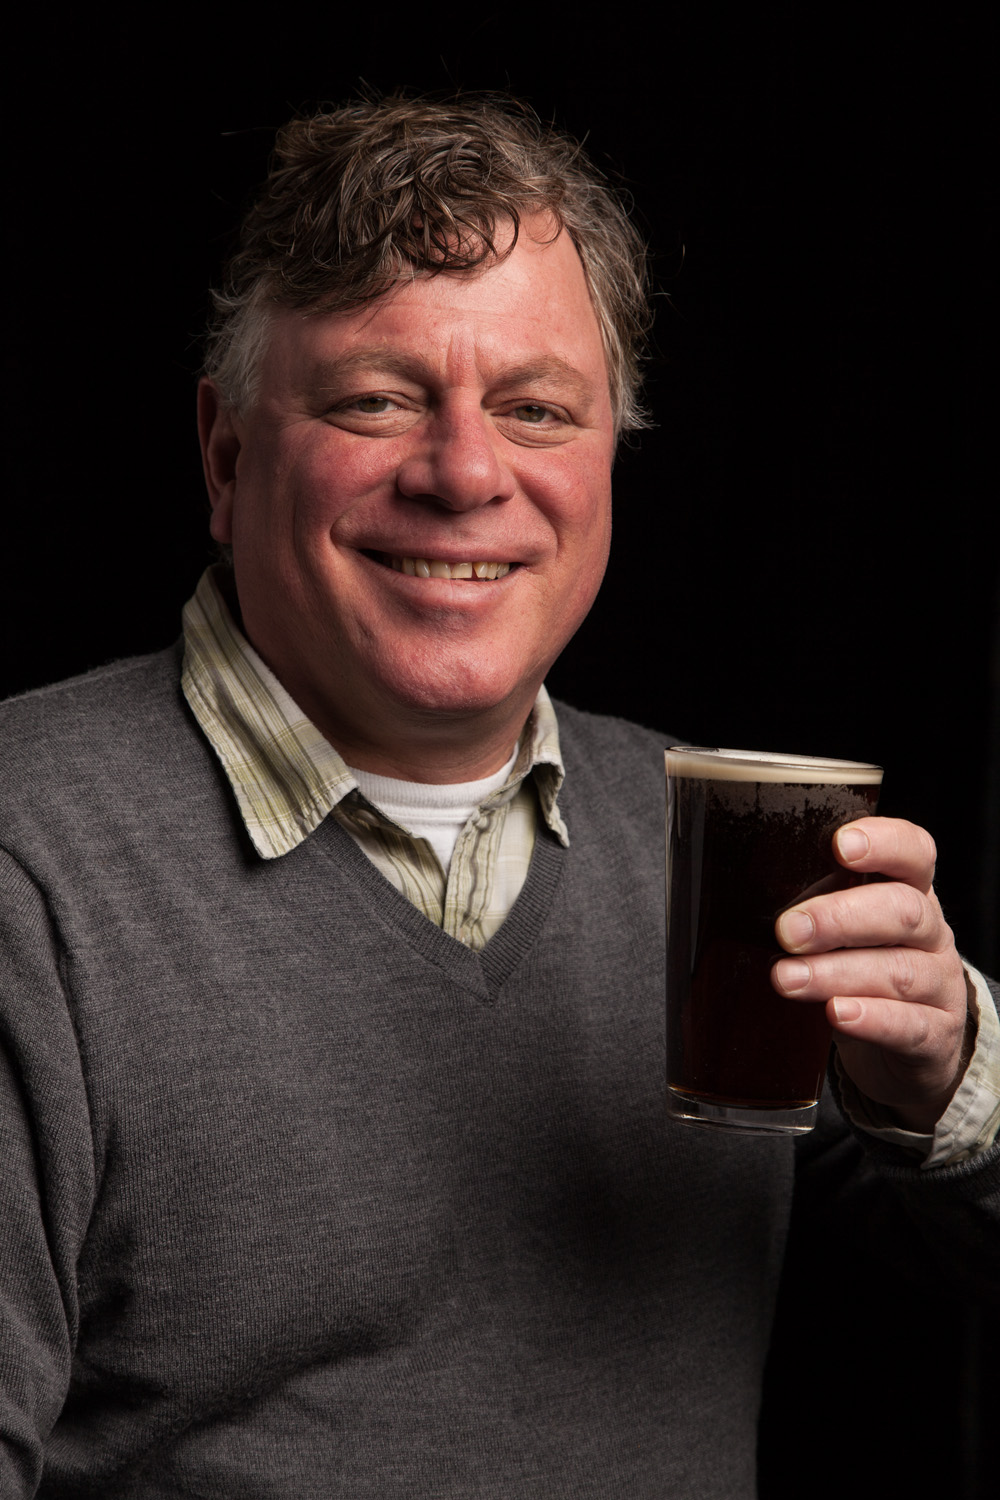 Ed Stebbins, Founding Partner of Gritty McDuffs in Portland, ME Established in 1988